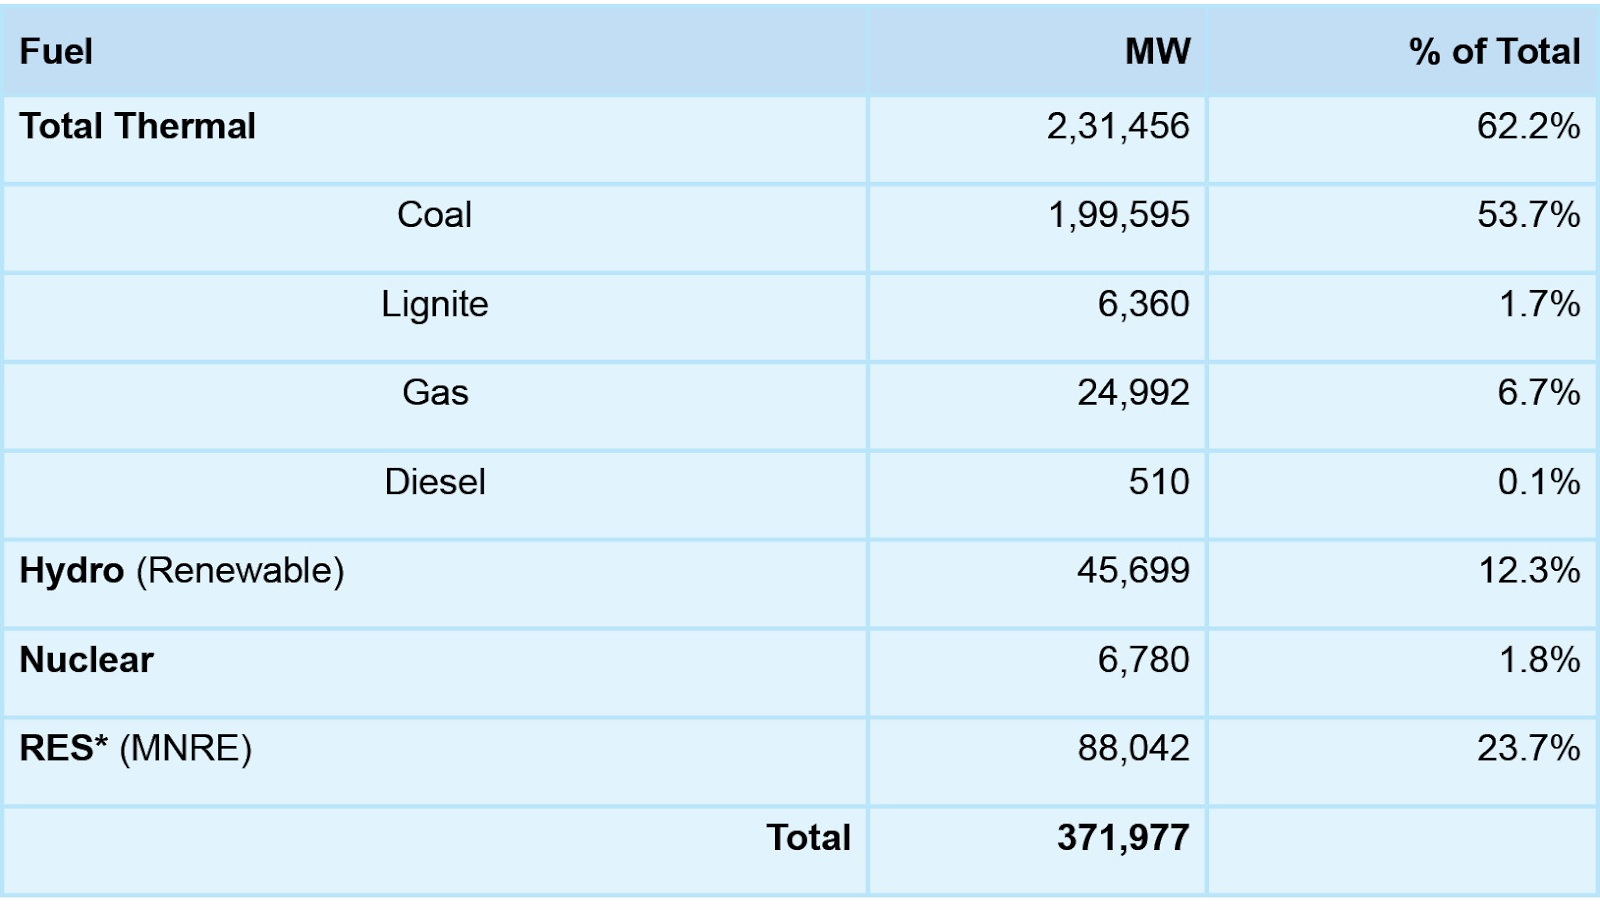 Coal-Based-Power-Sector